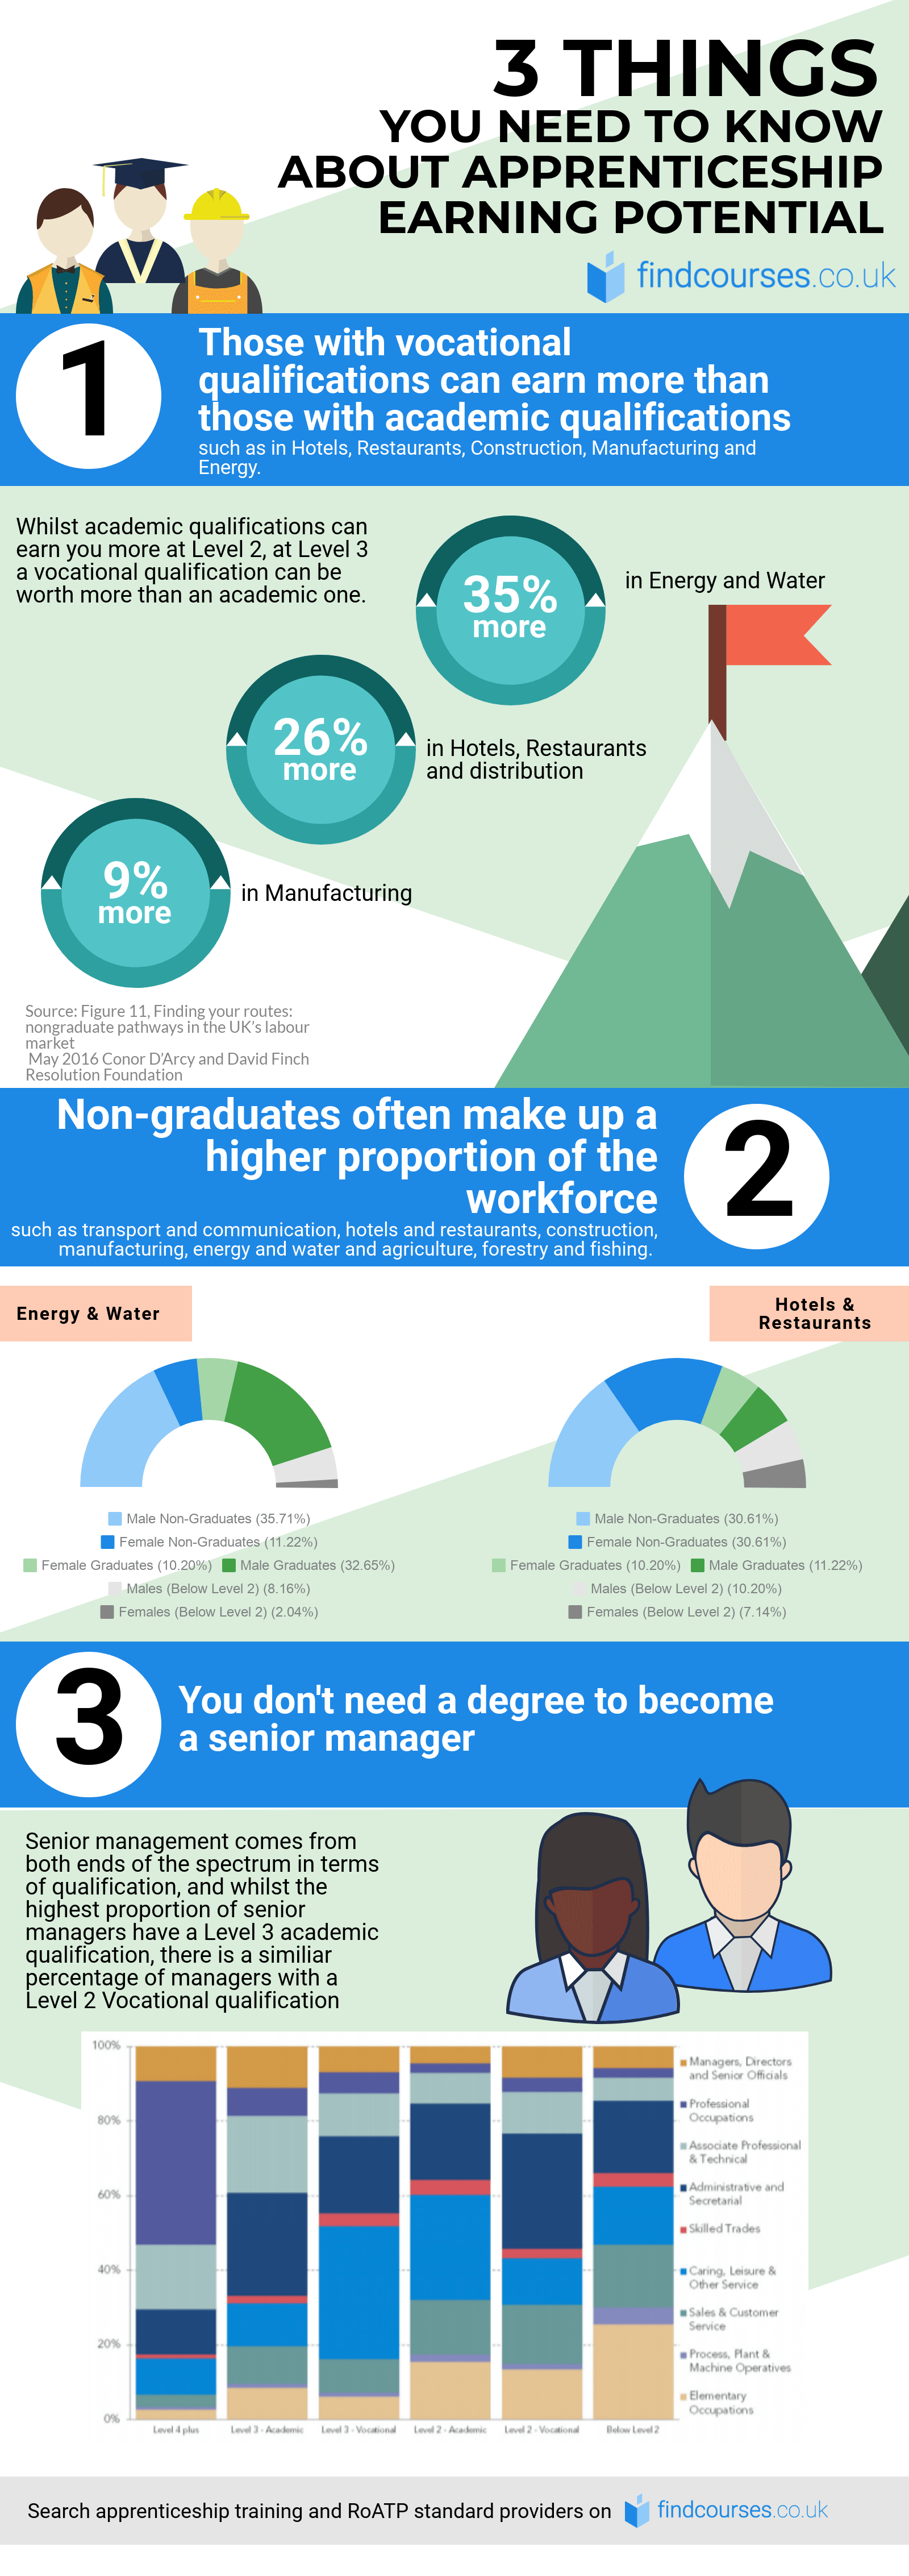 apprenticeships-earning-potential-infographic